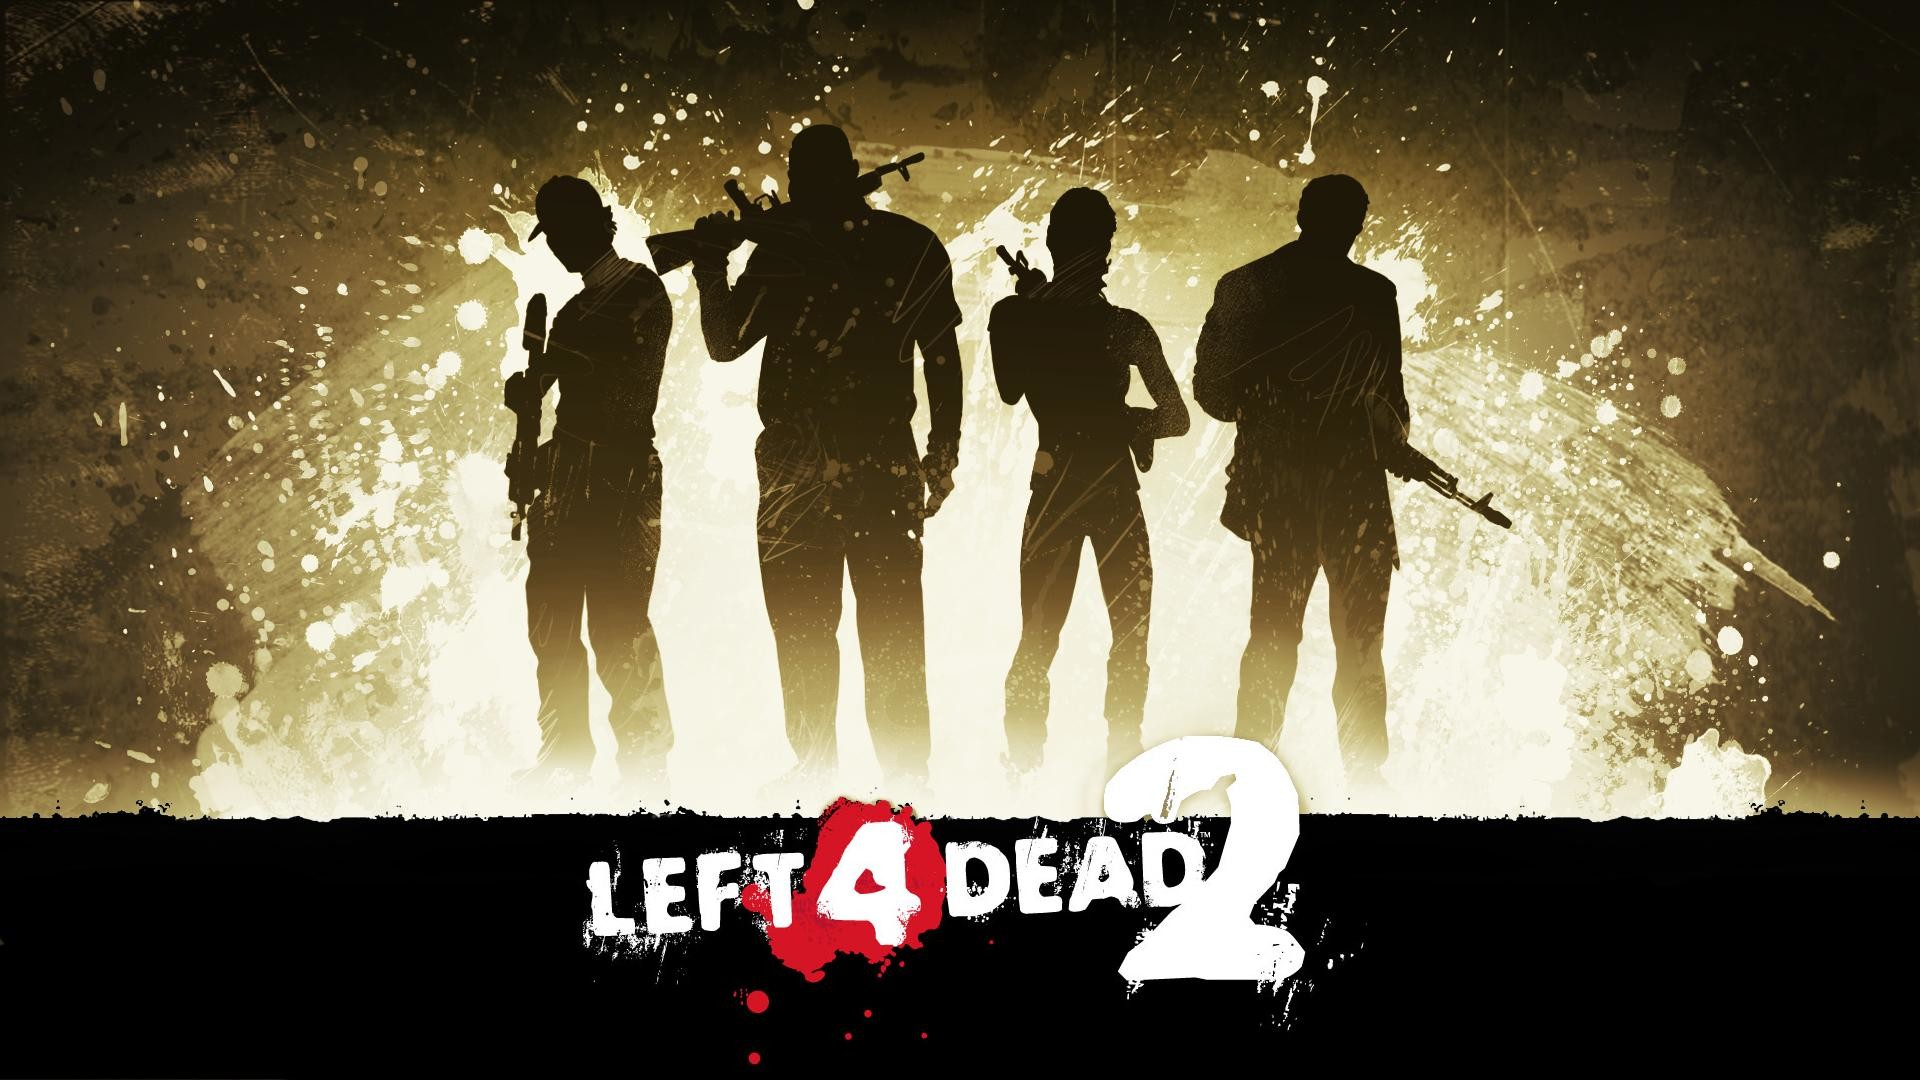 Res: 1920x1080,  Left 4 Dead 2 Wallpapers, Special HDQ Left 4 Dead 2 Photos  (Special